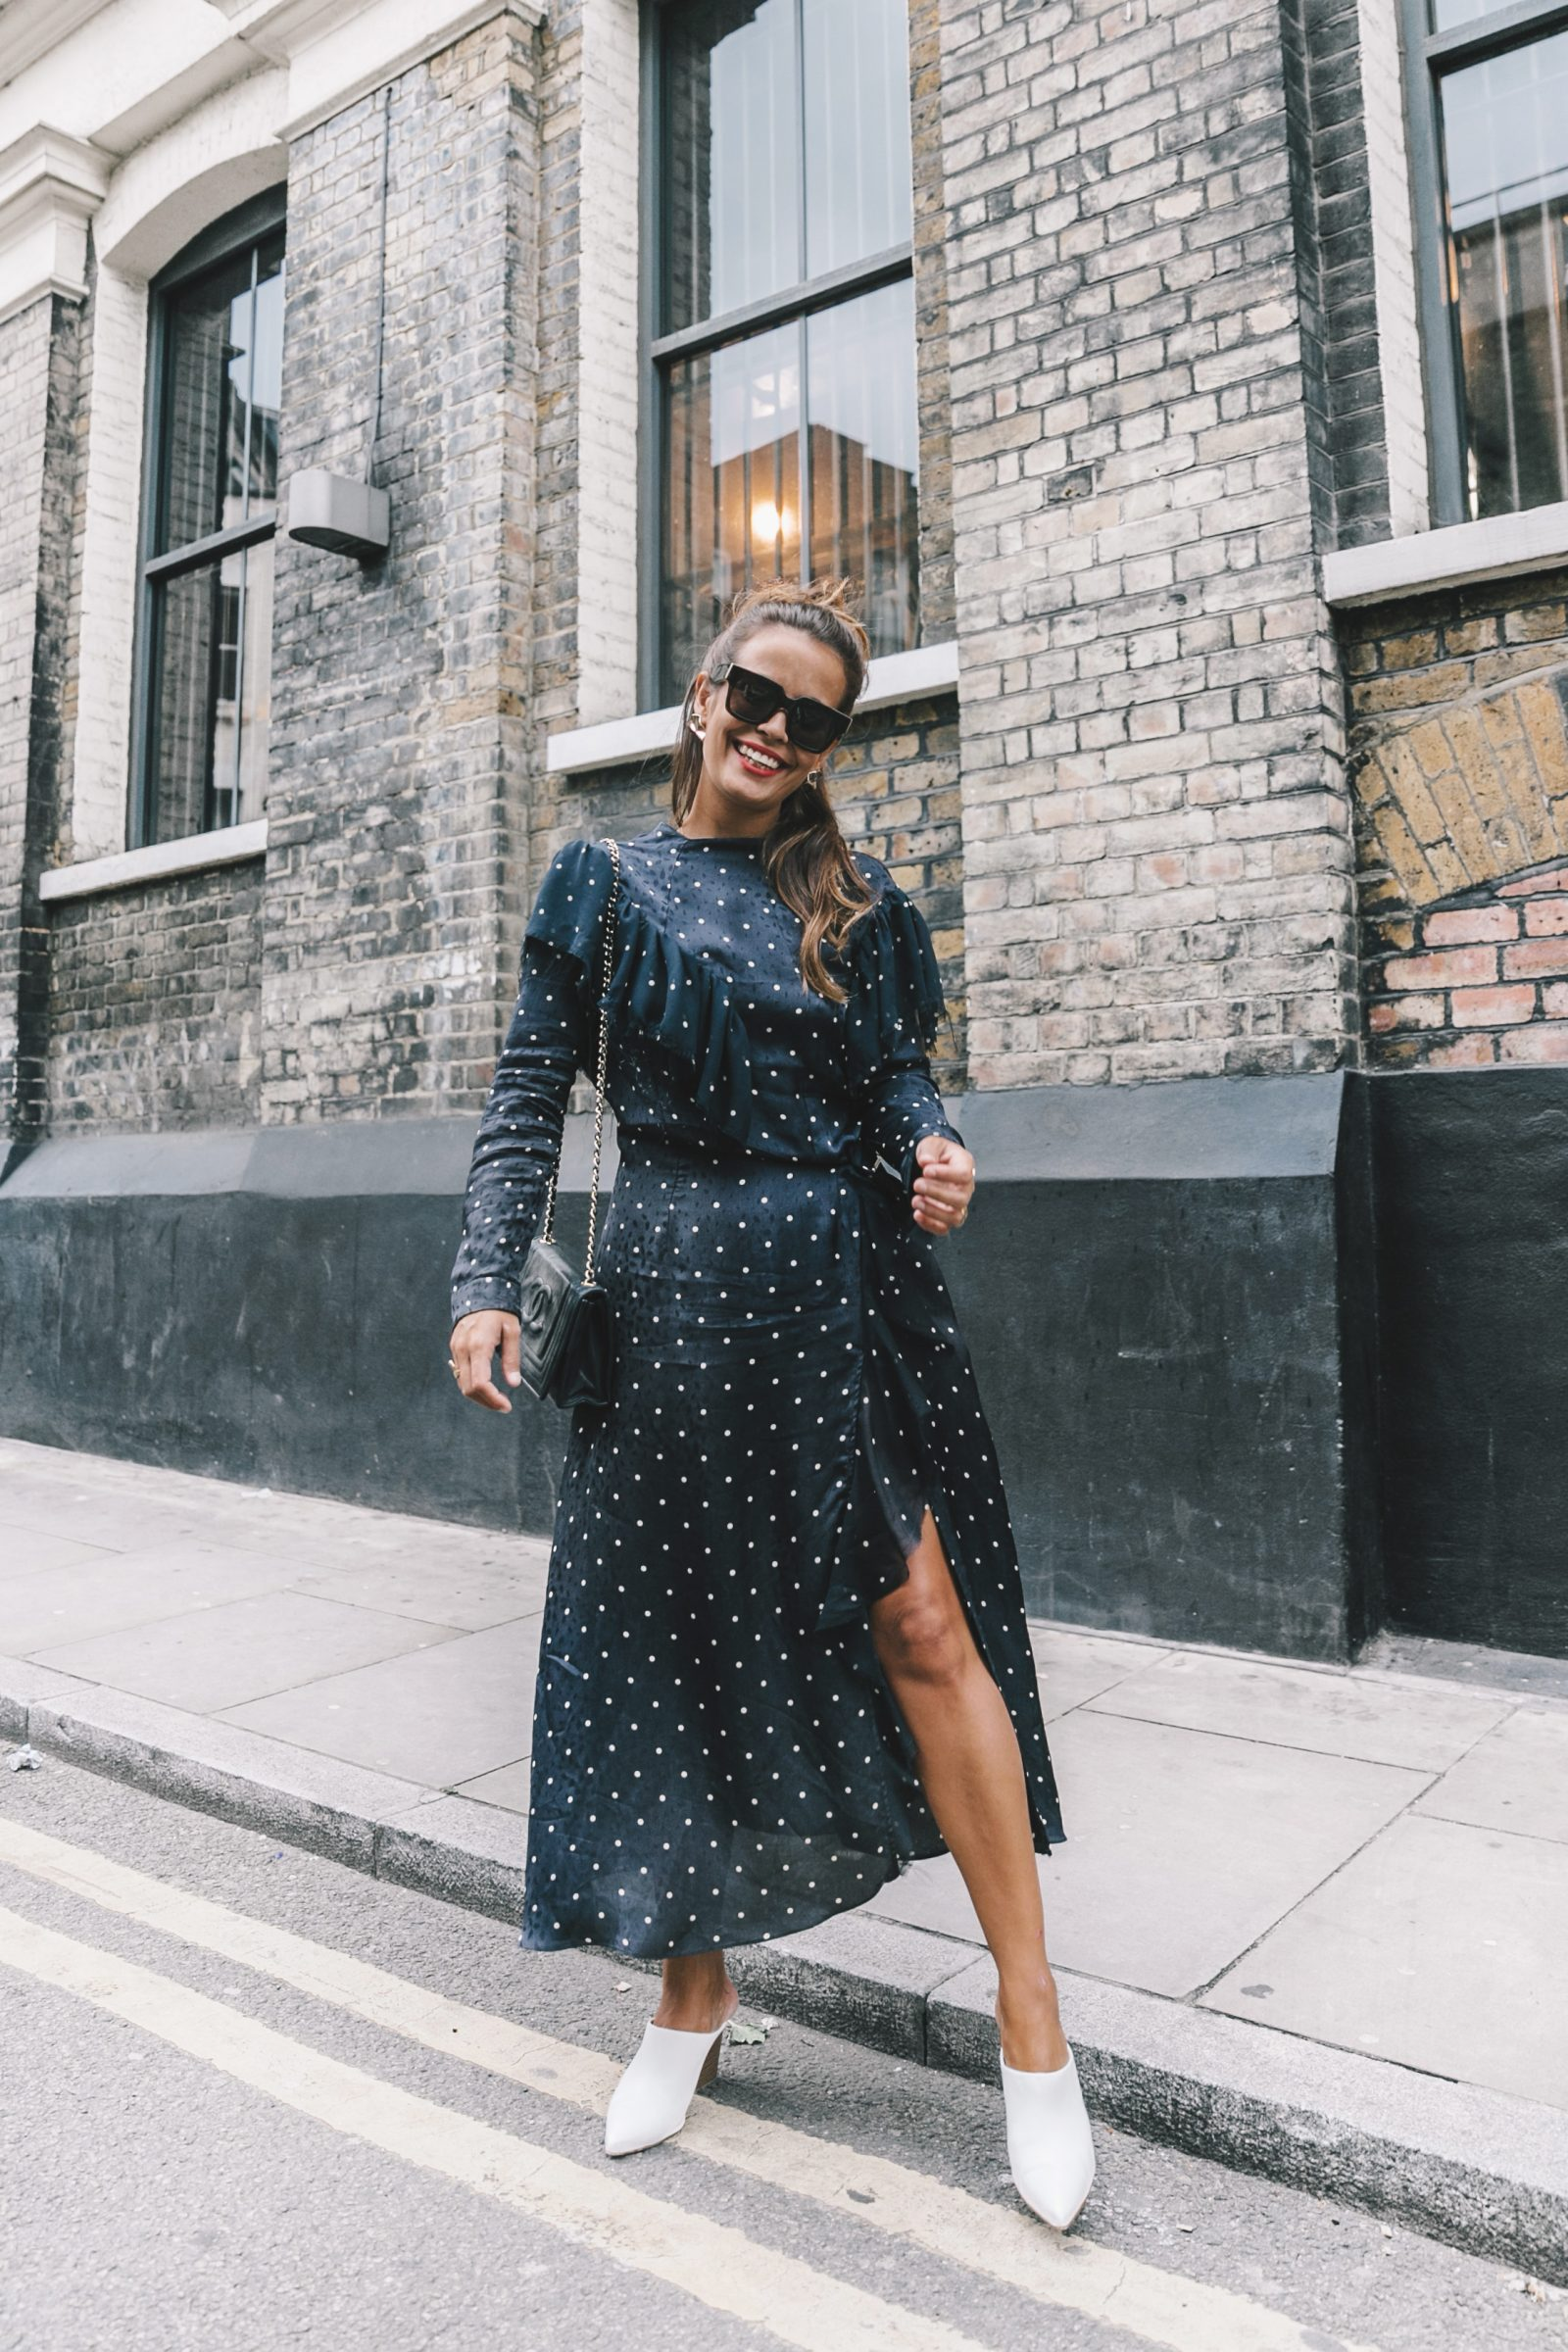 lfw-london_fashion_week_ss17-street_style-outfits-collage_vintage-vintage-topshop_unique-polka_dot_dress-white_mules-topshop_boutique-adenorah-44